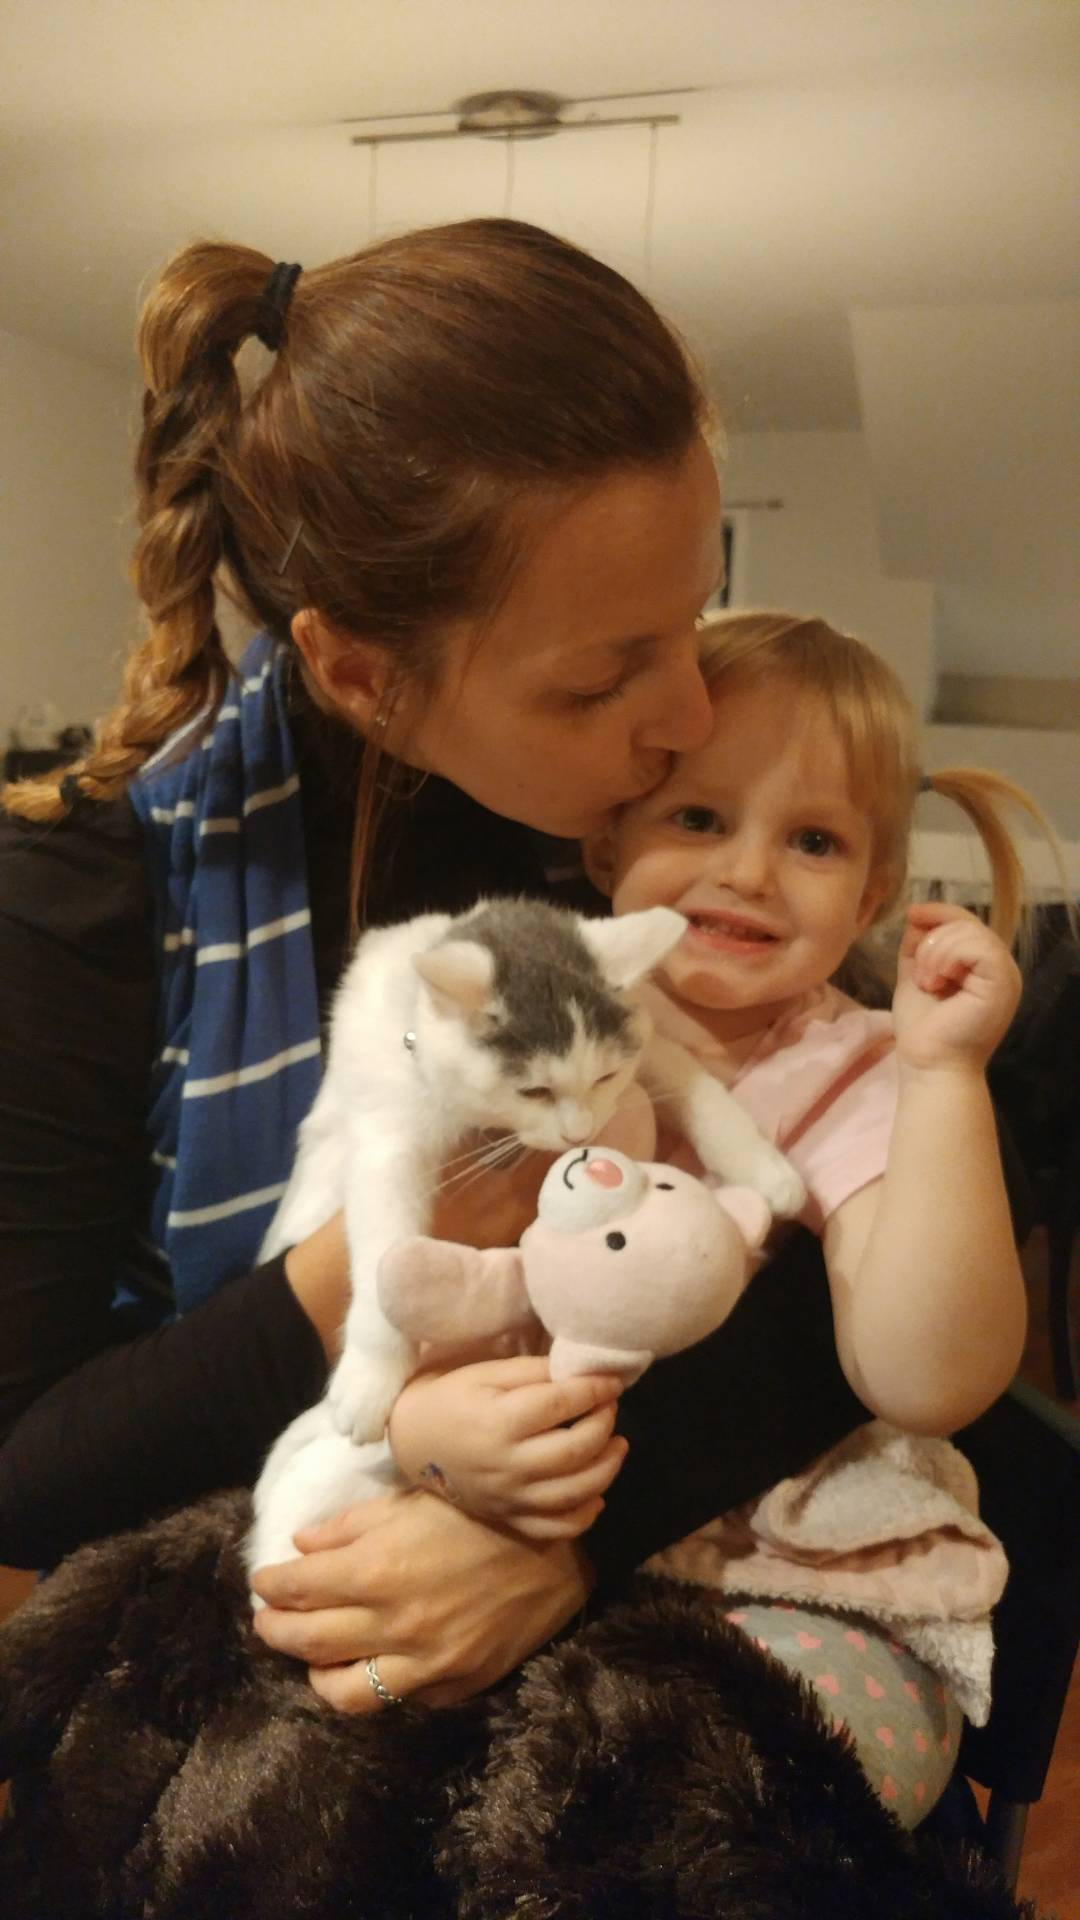 animaux compagnie chat enfant harmonie